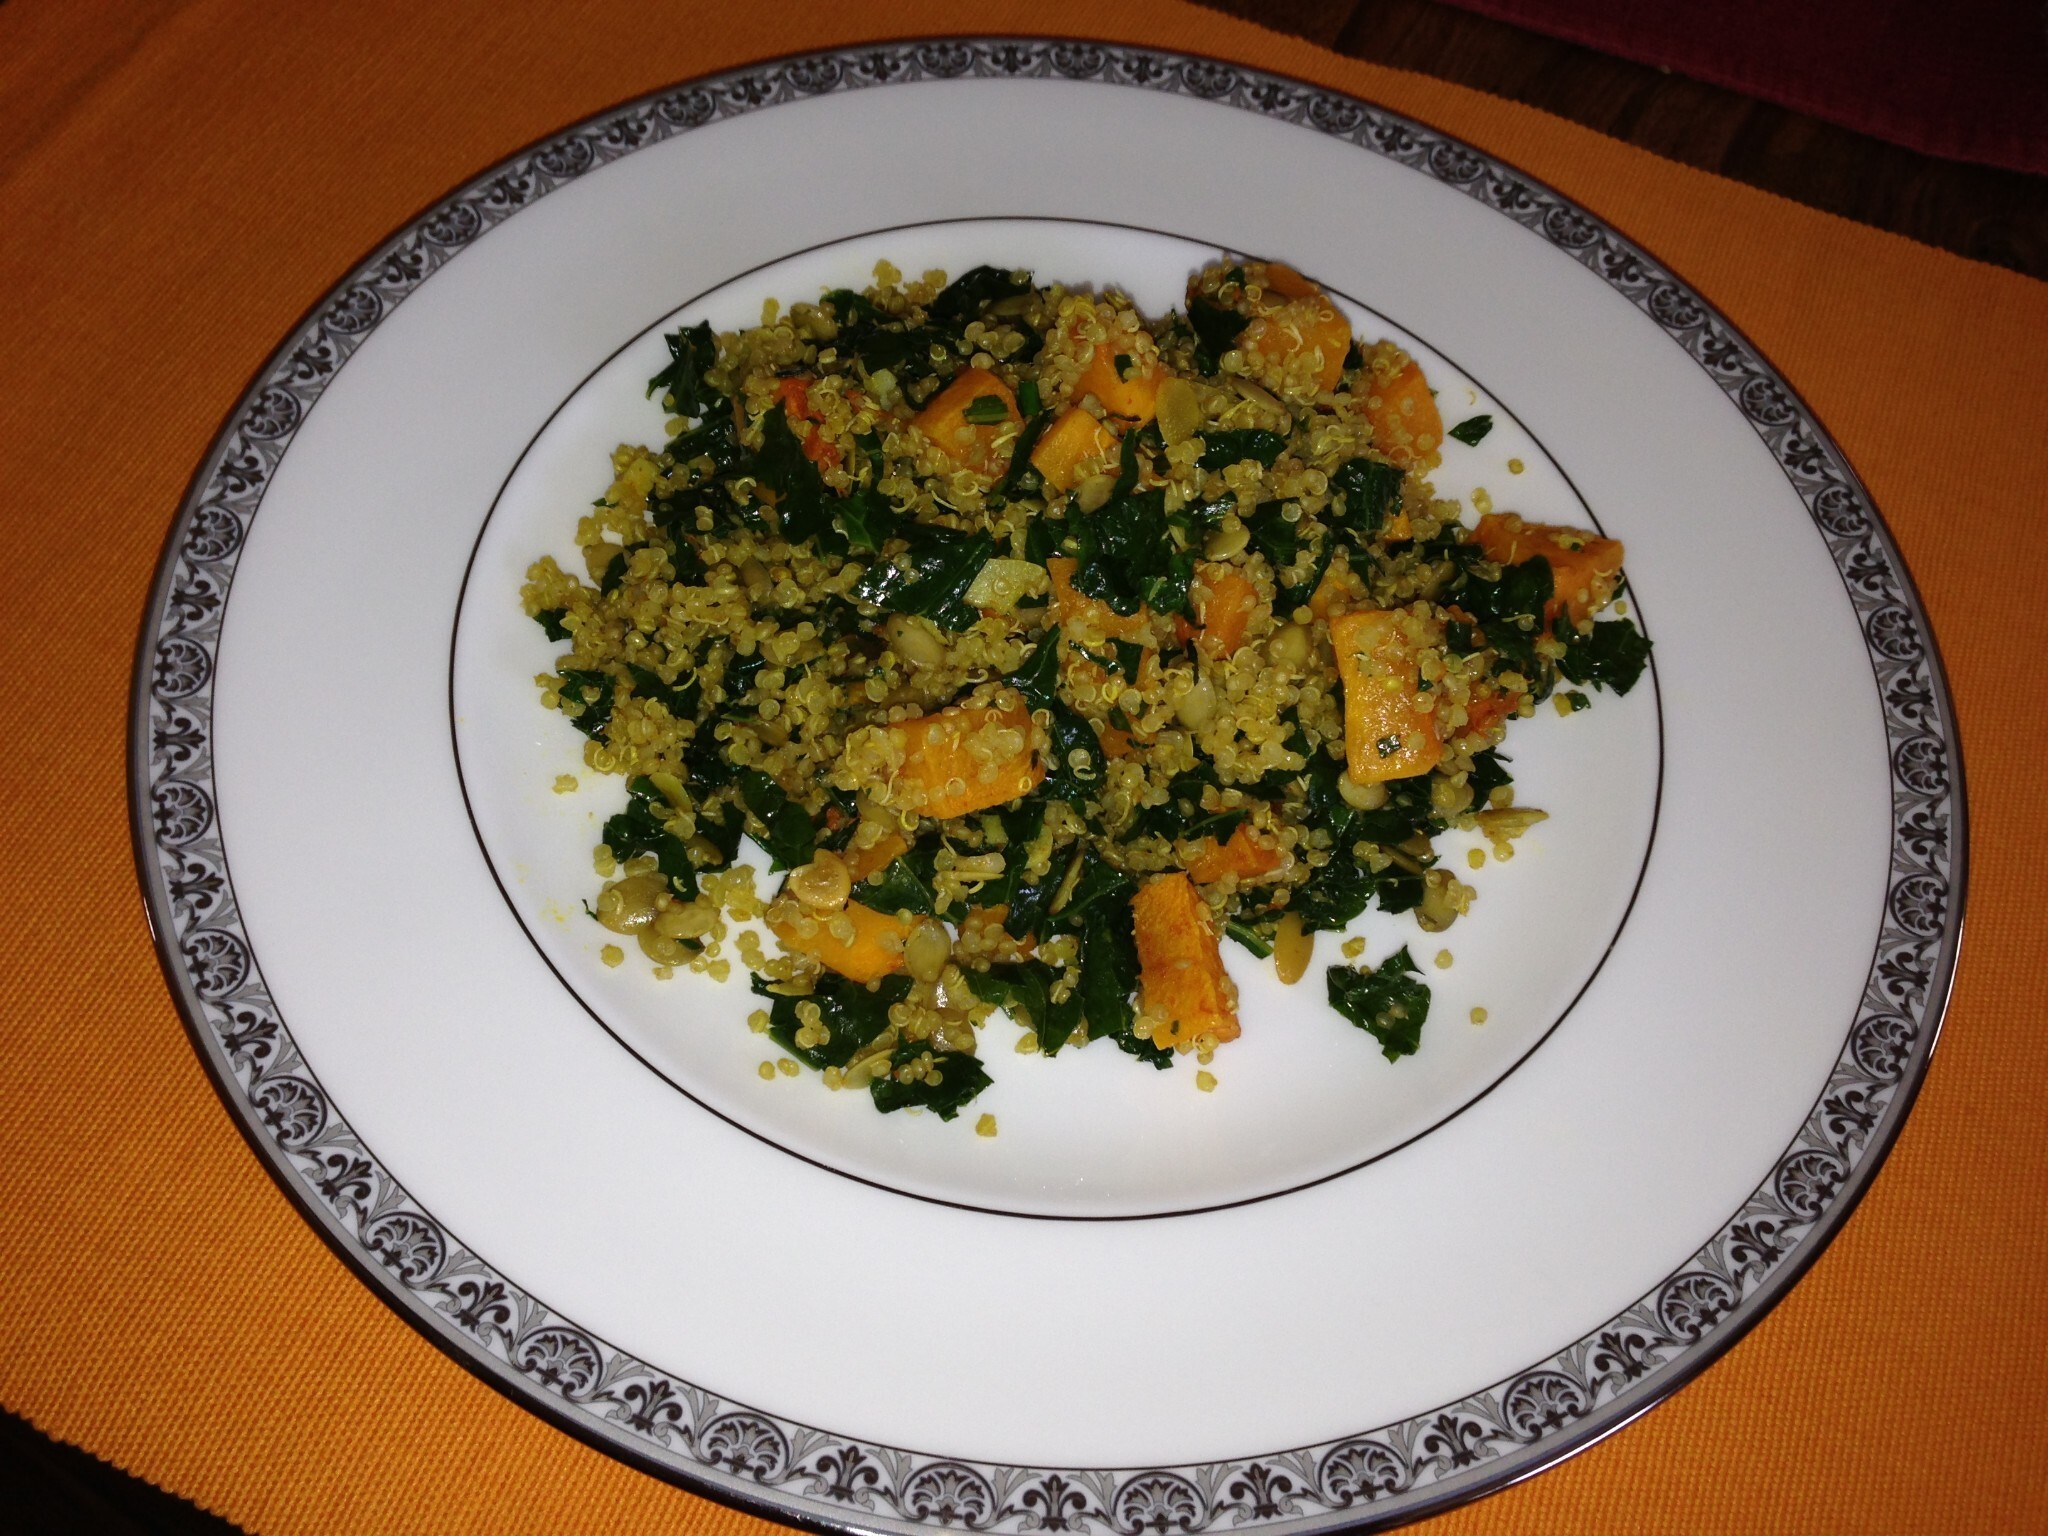 Quinoa Salad With Kale & Roasted Butternut Squash